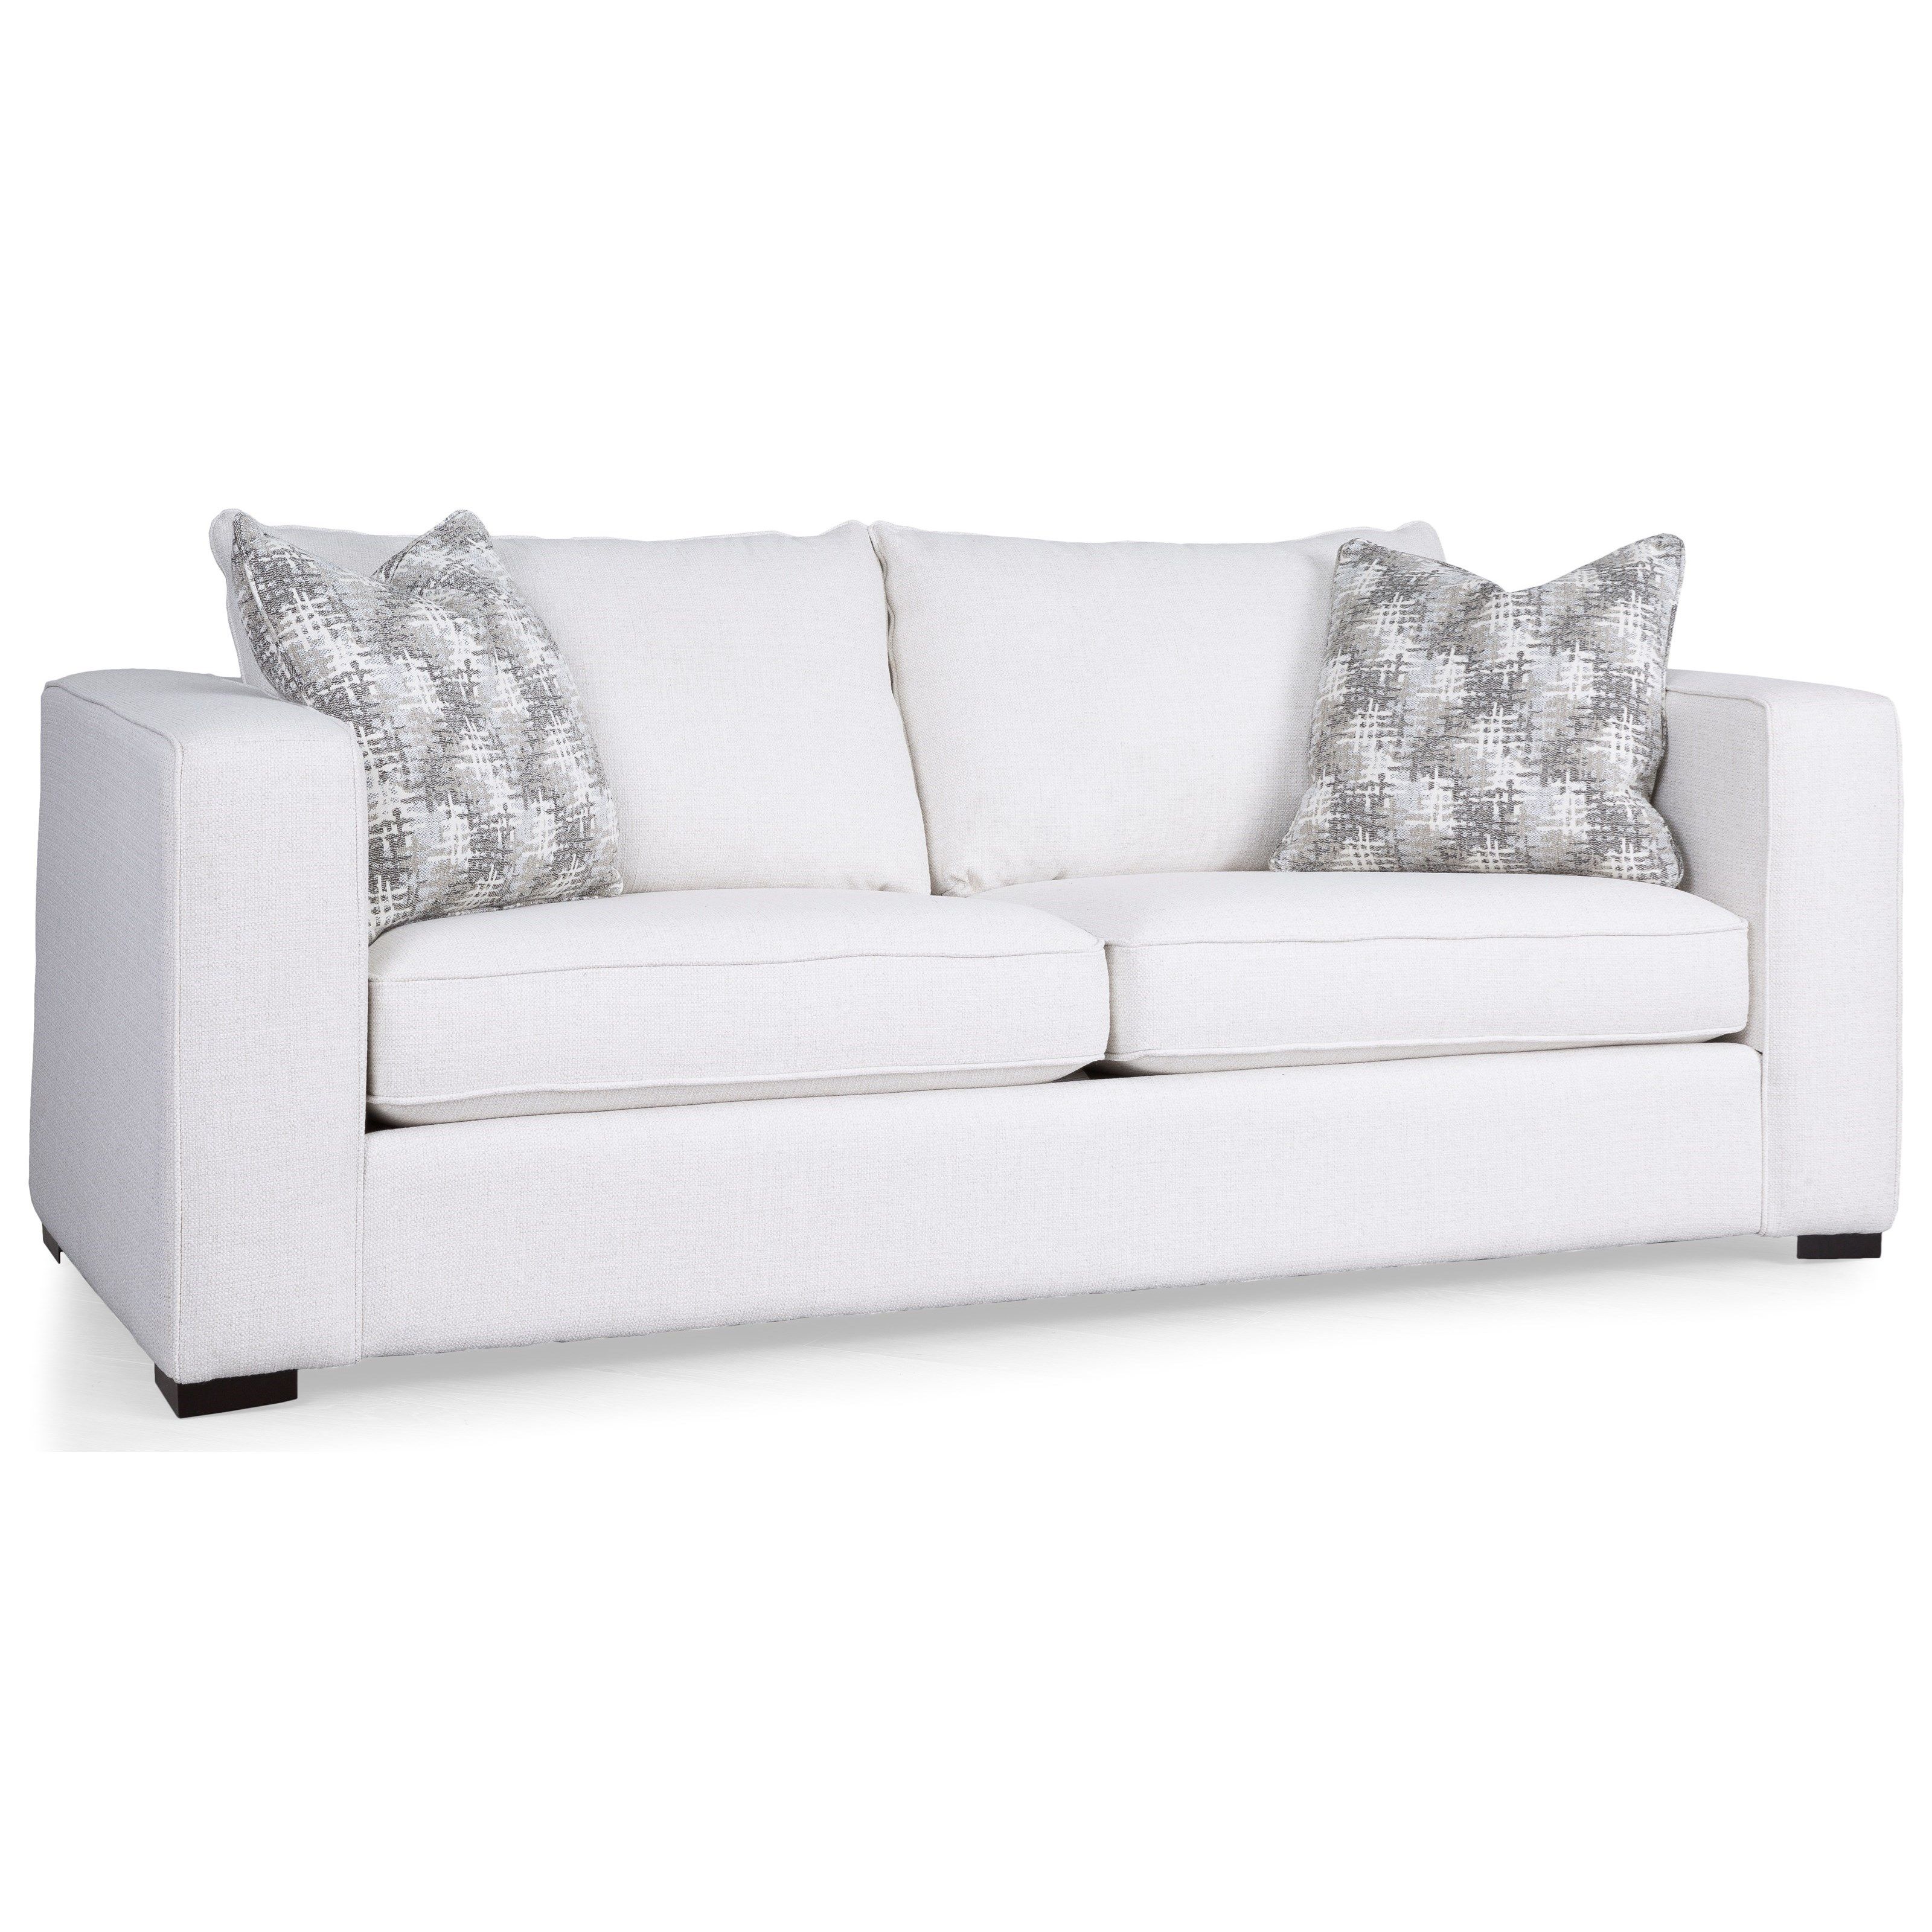 2900 Sofa by Decor-Rest at Rooms for Less